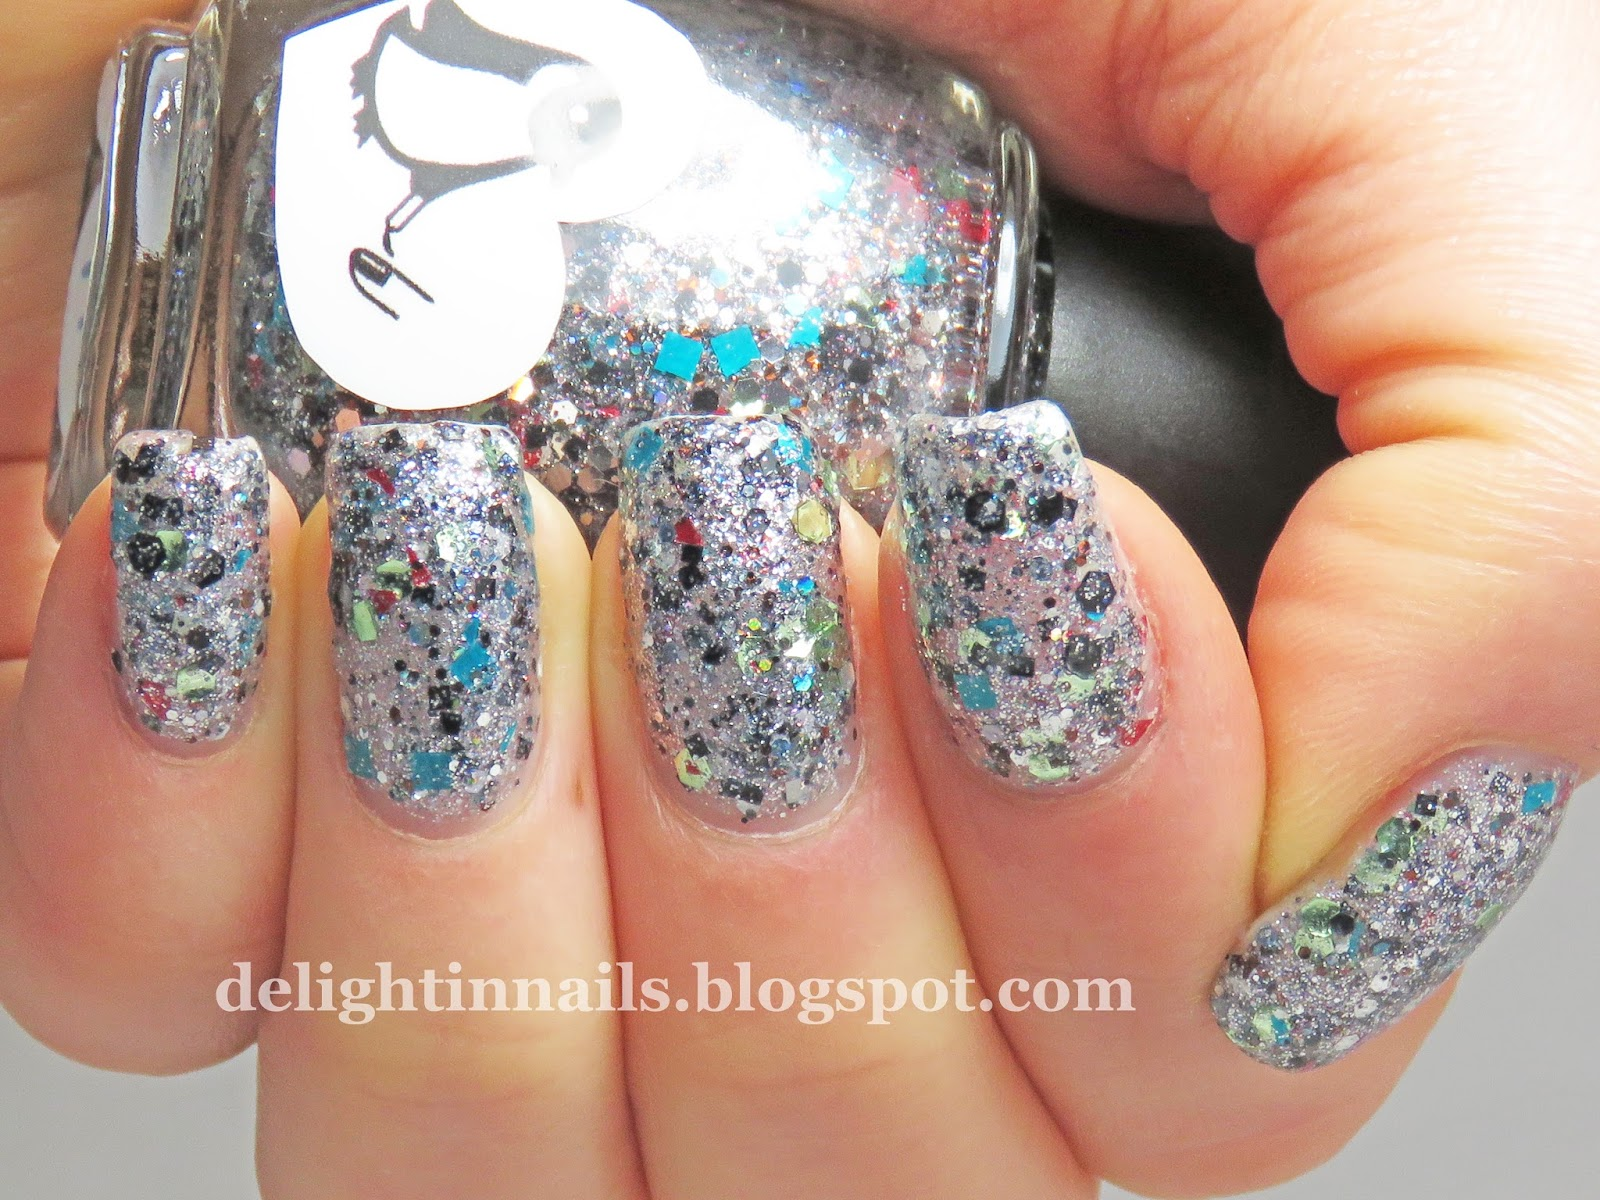 Delight In Nails: January 2016